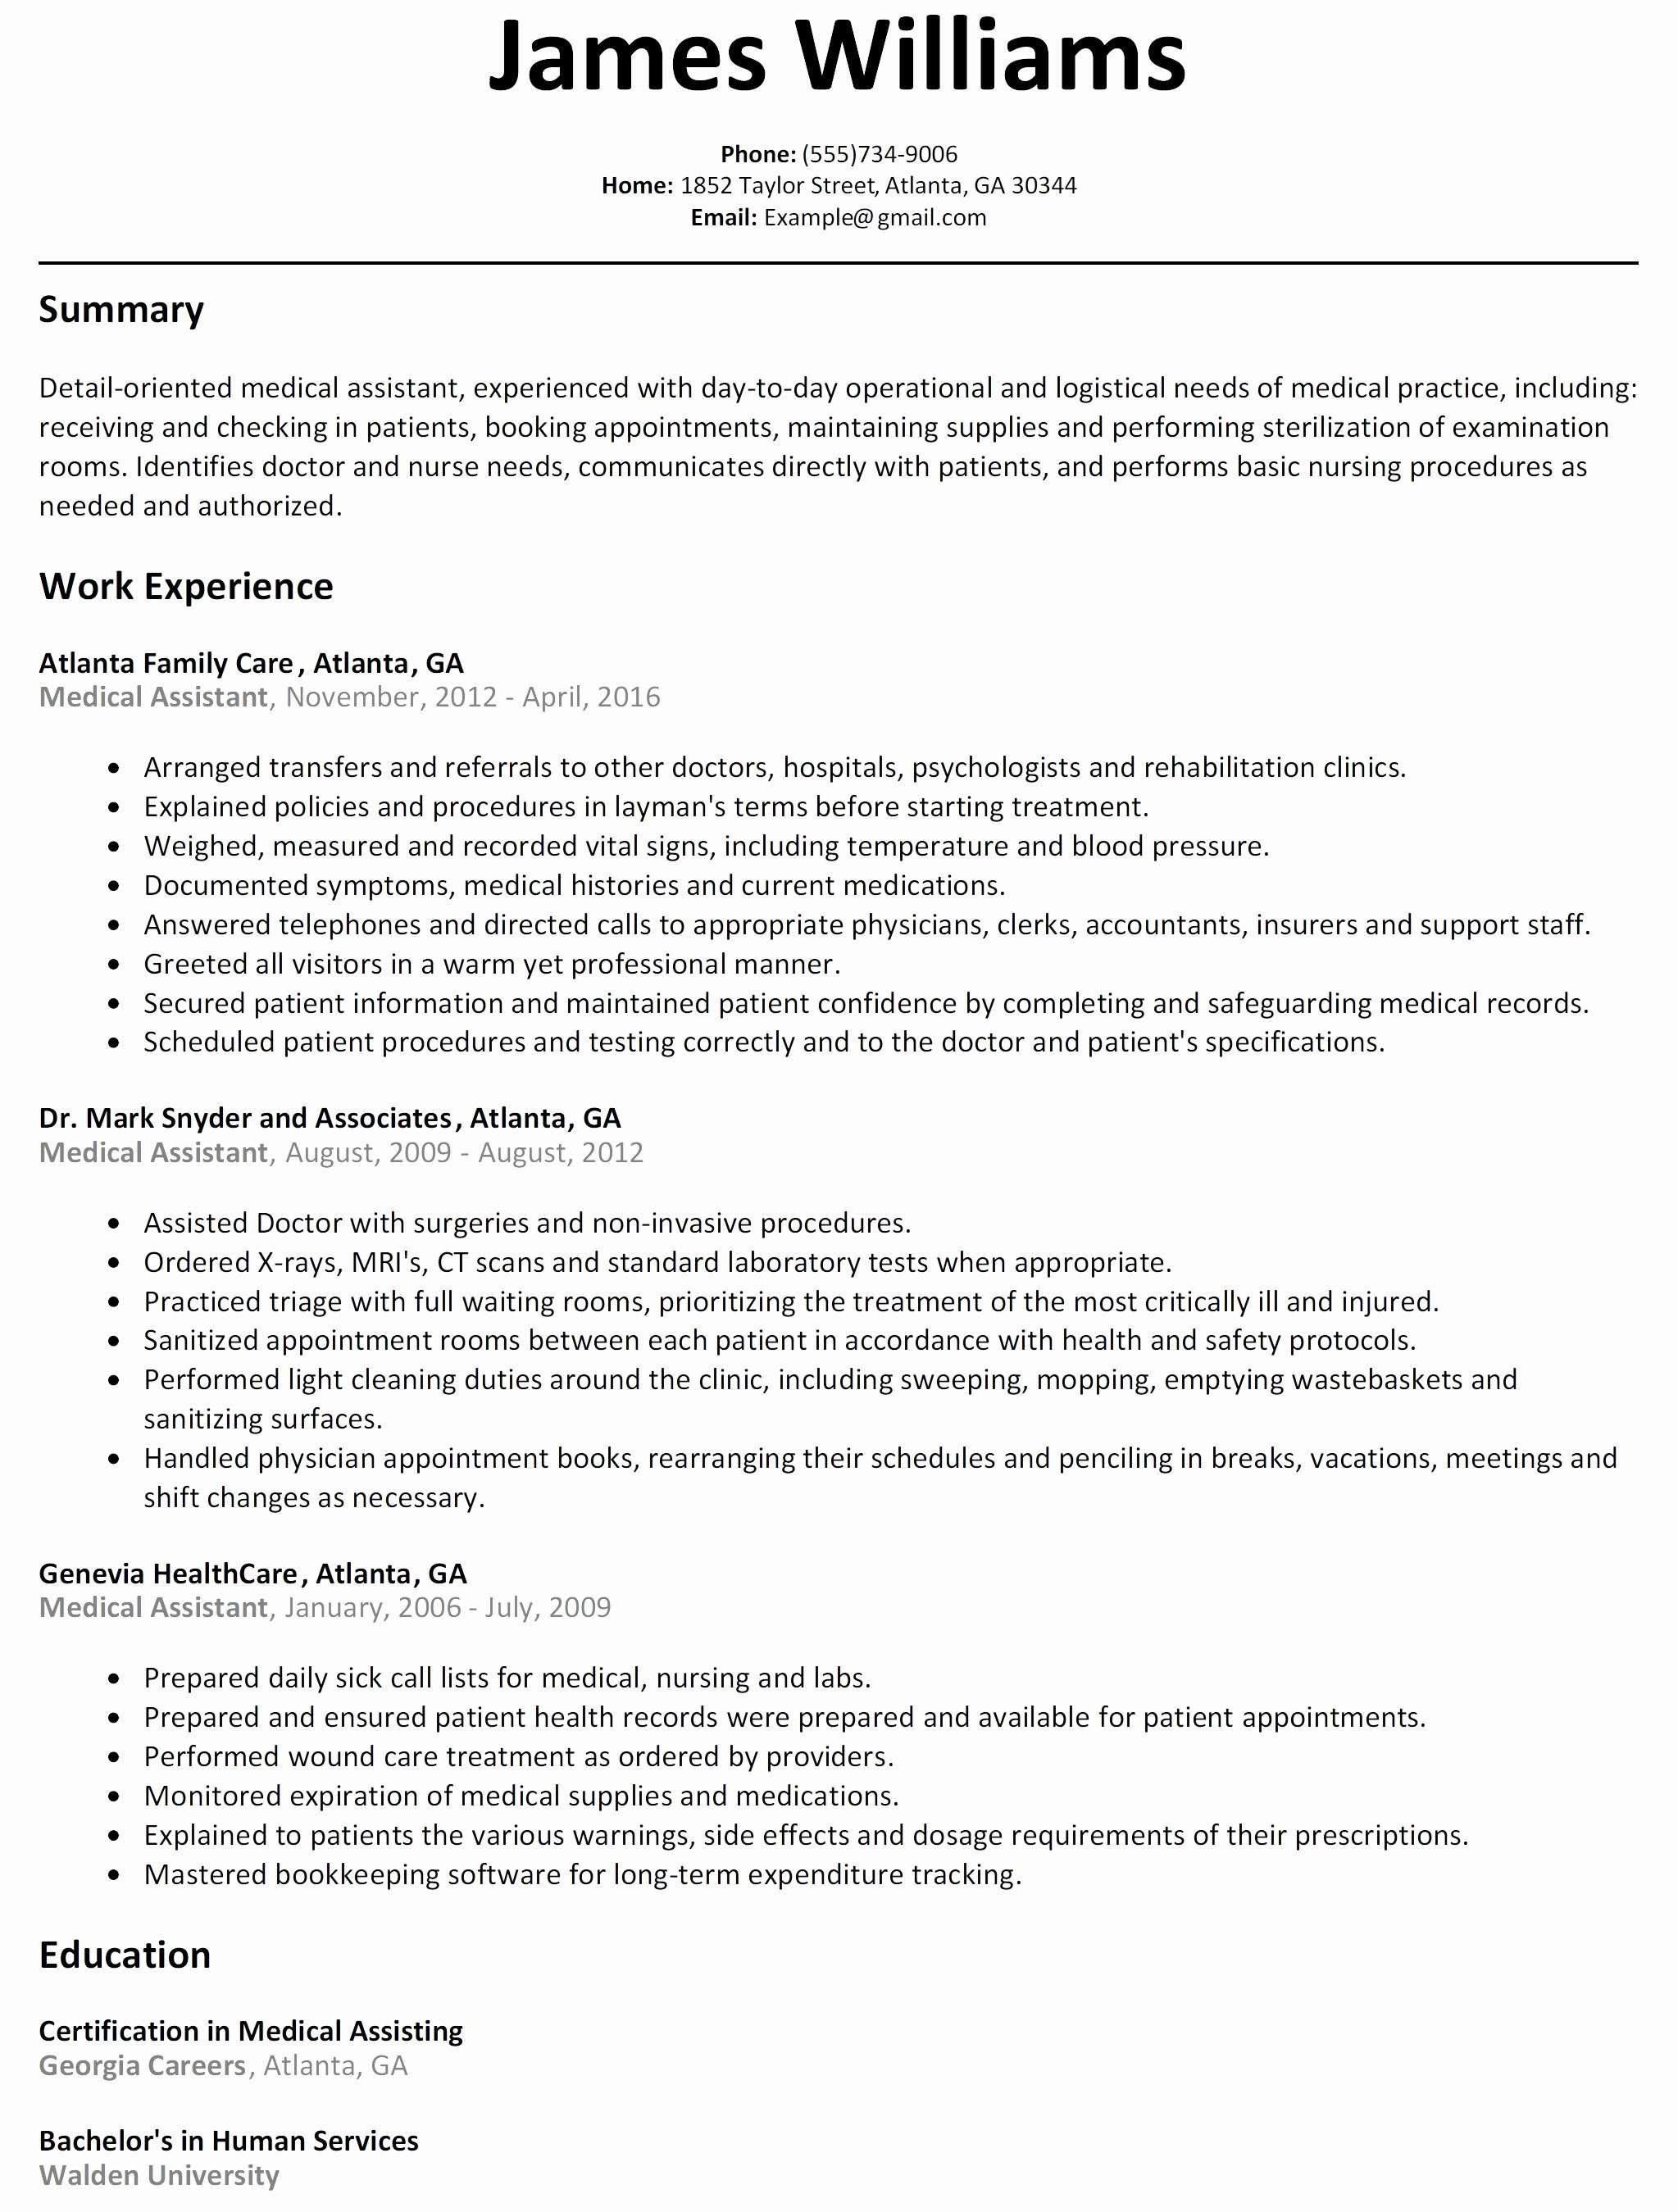 Help Making A Resume for Free - Resume Help Free Awesome Fresh Entry Level Resume sorority Resume 0d